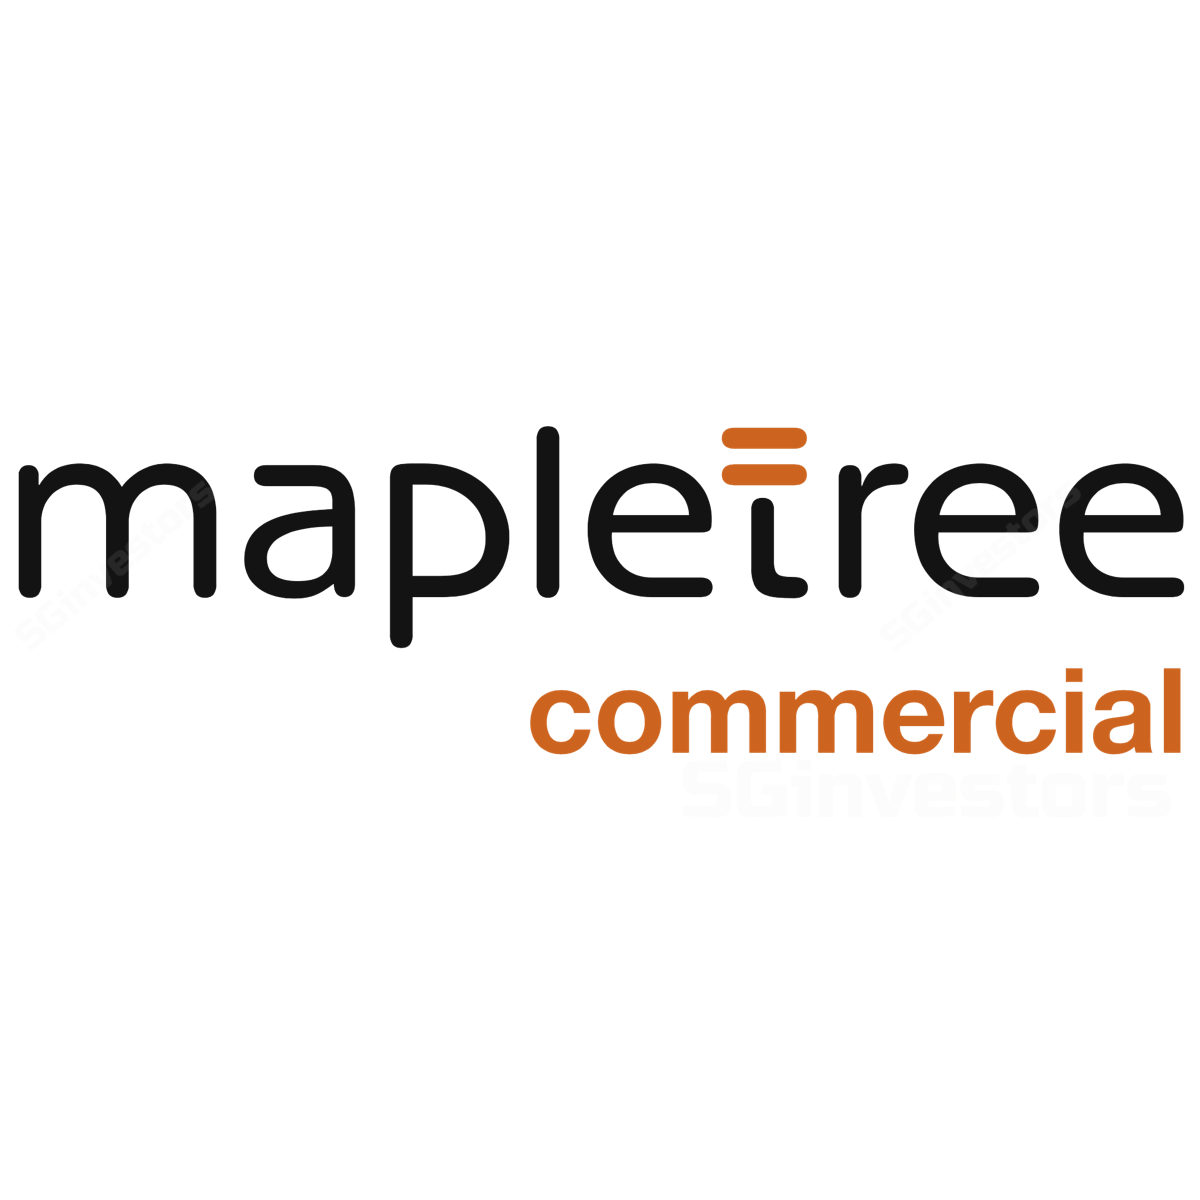 Mapletree Commercial Trust (MCT SP) - Maybank Kim Eng 2018-01-26: Mall Moderation Not Priced In